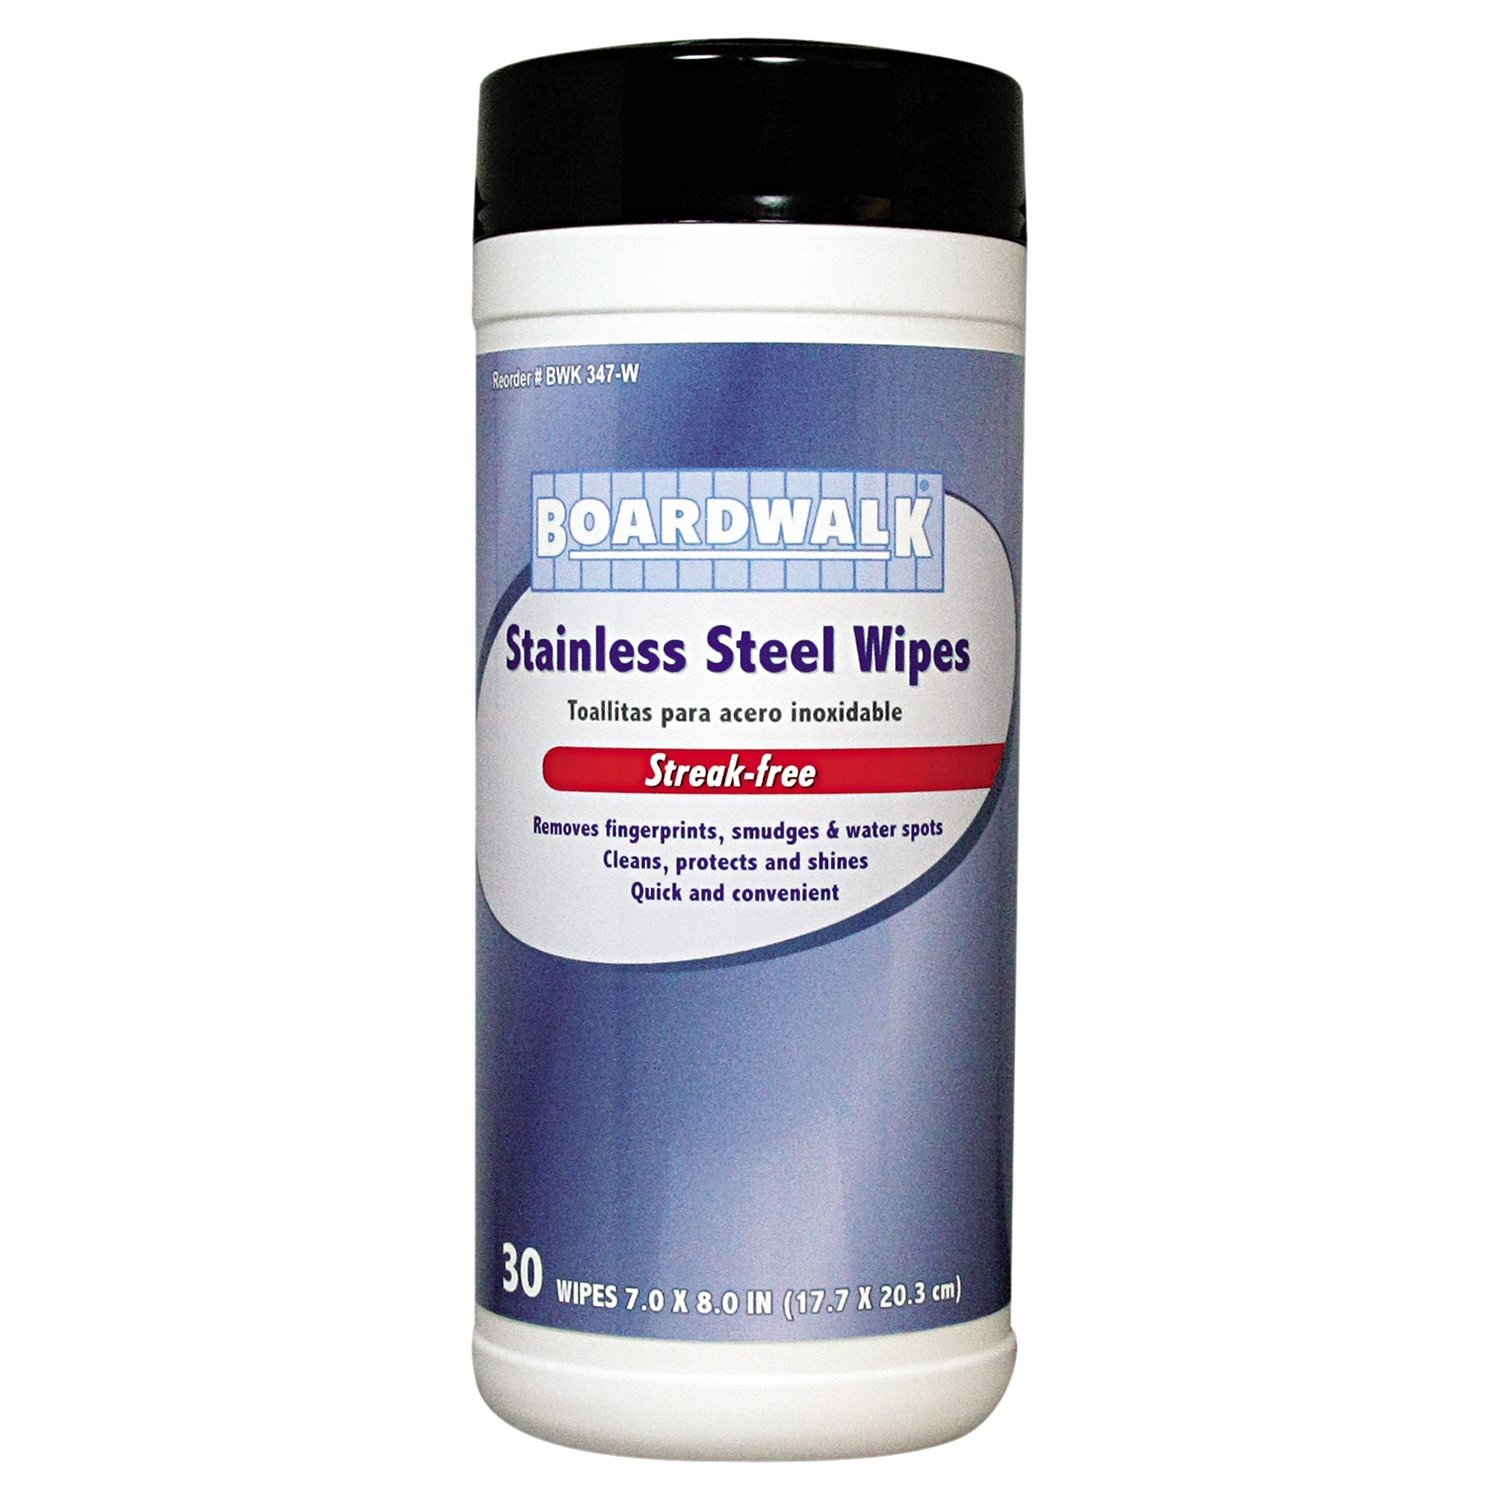 Boardwalk 347-W Stainless Steel Wipes, 8'' Length by 7'' Width (12 Canisters of 30)